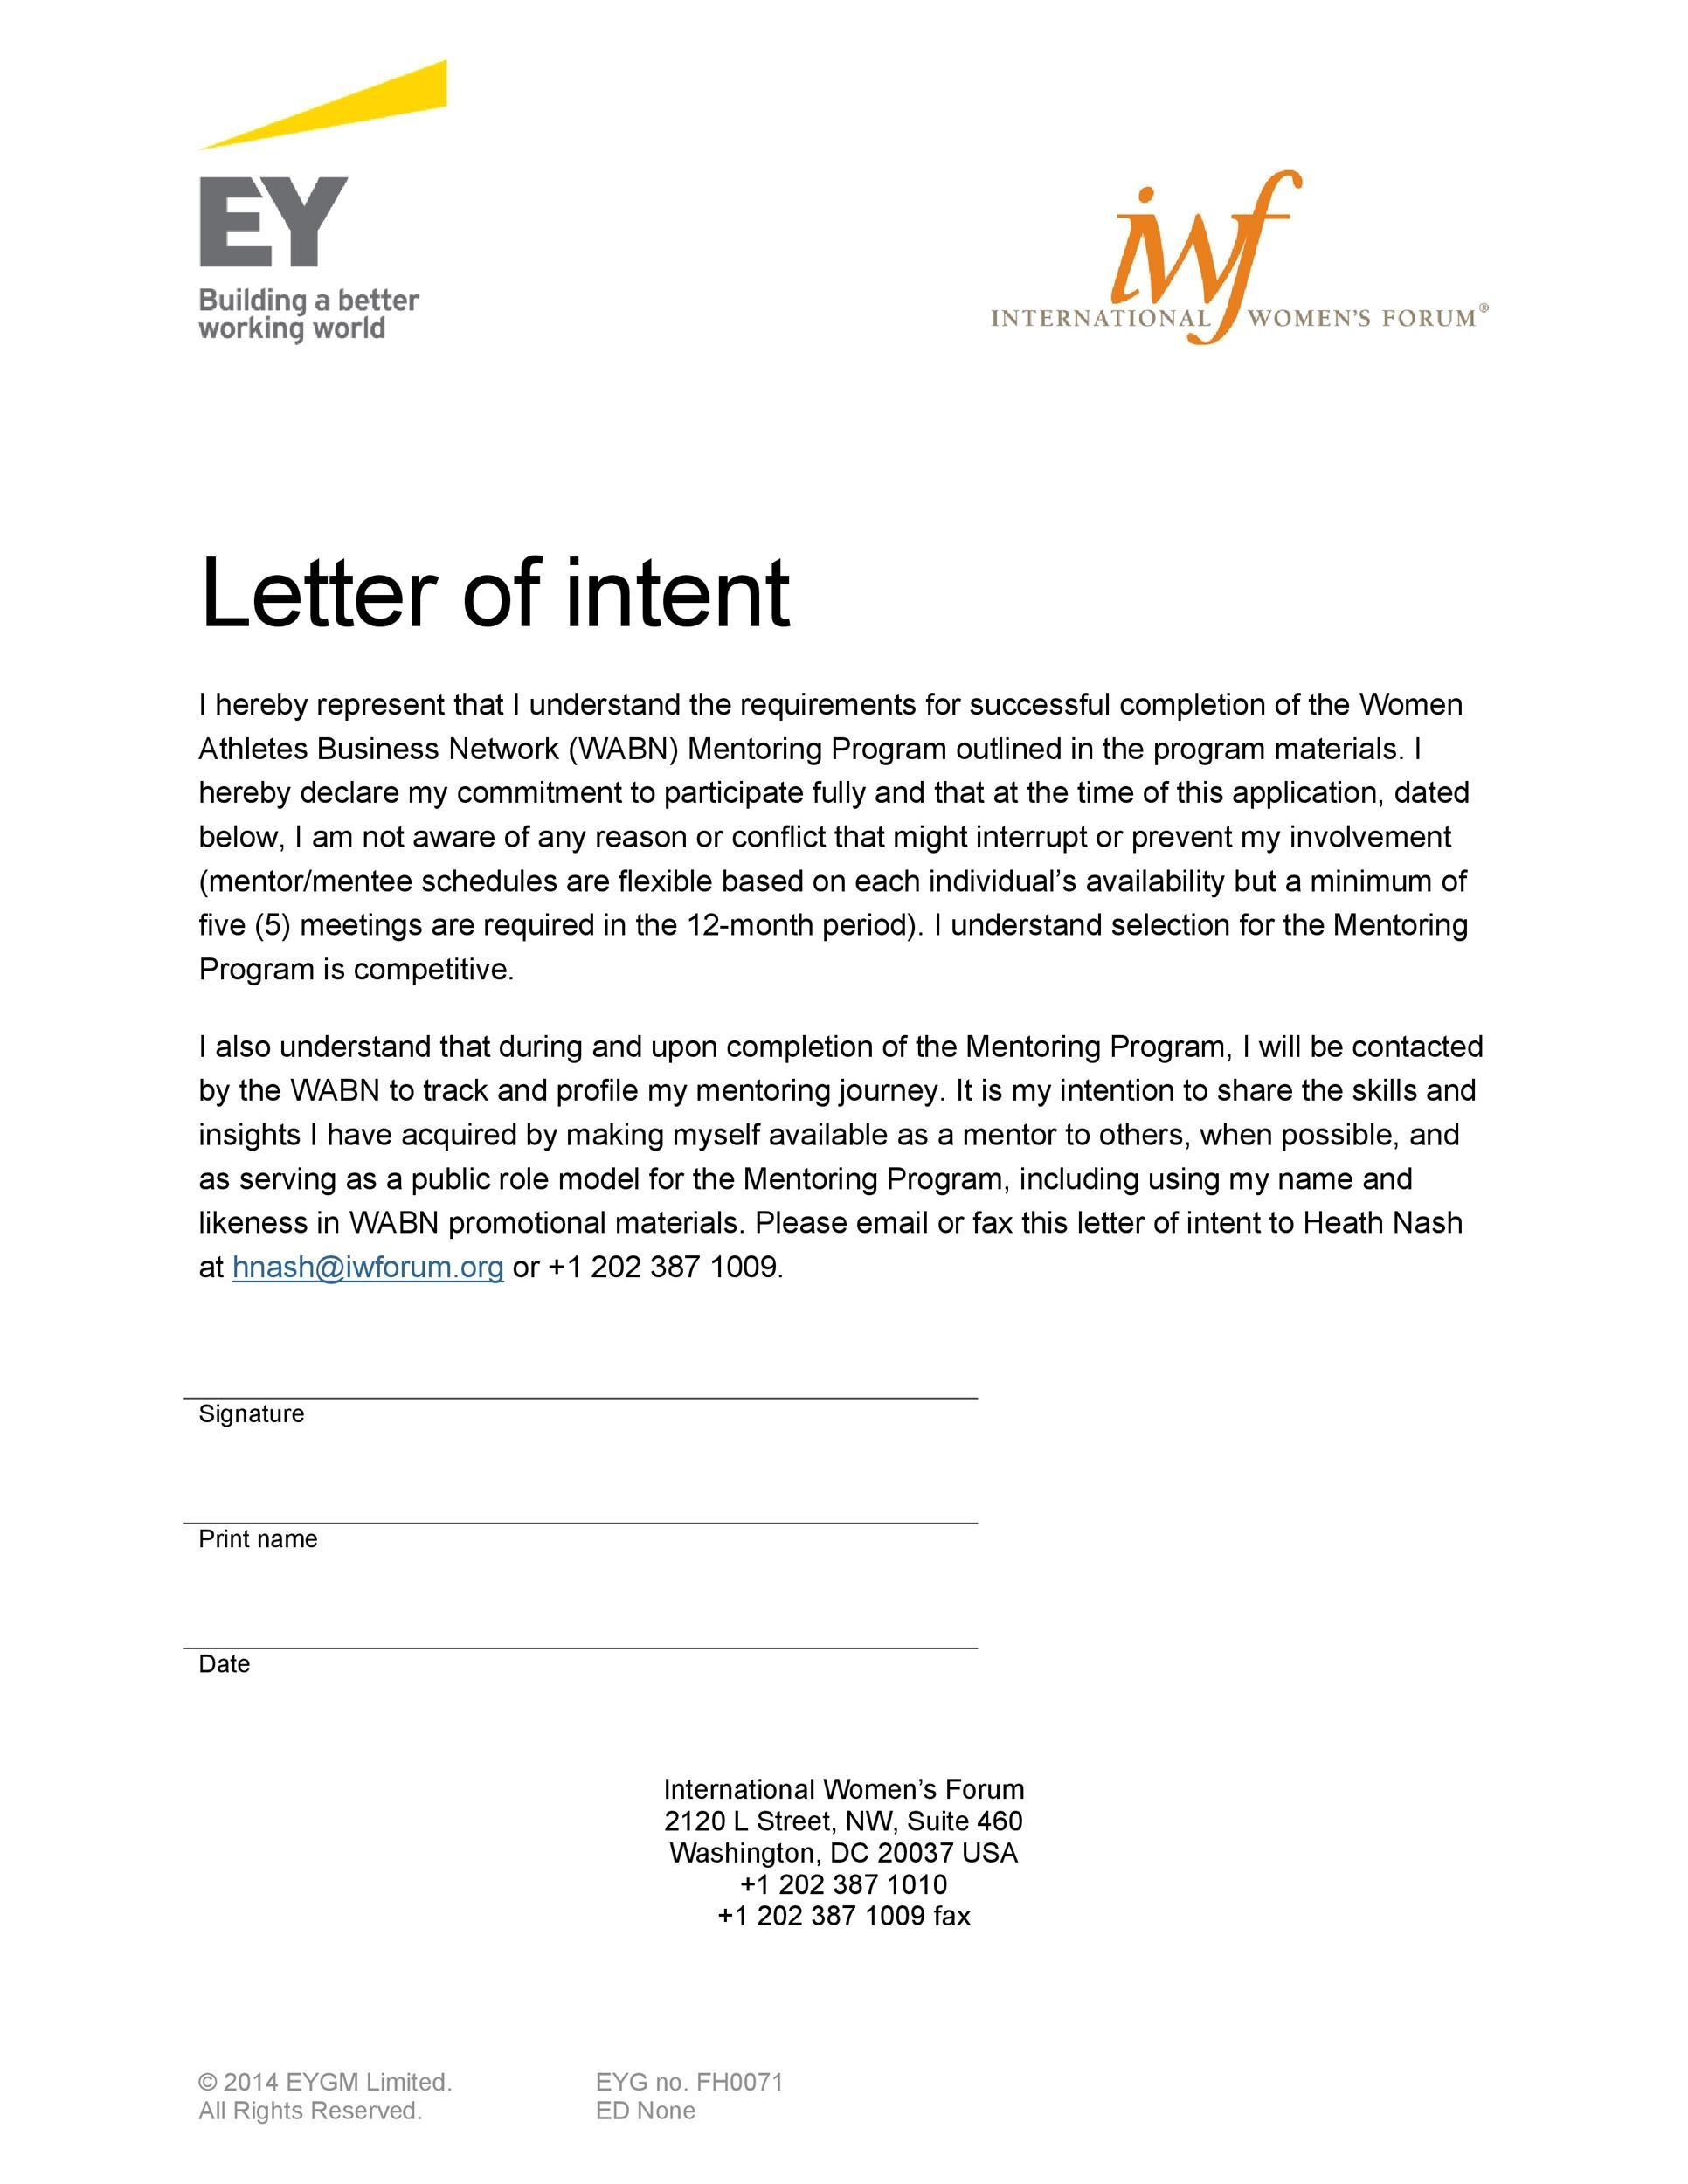 Free letter of intent 12